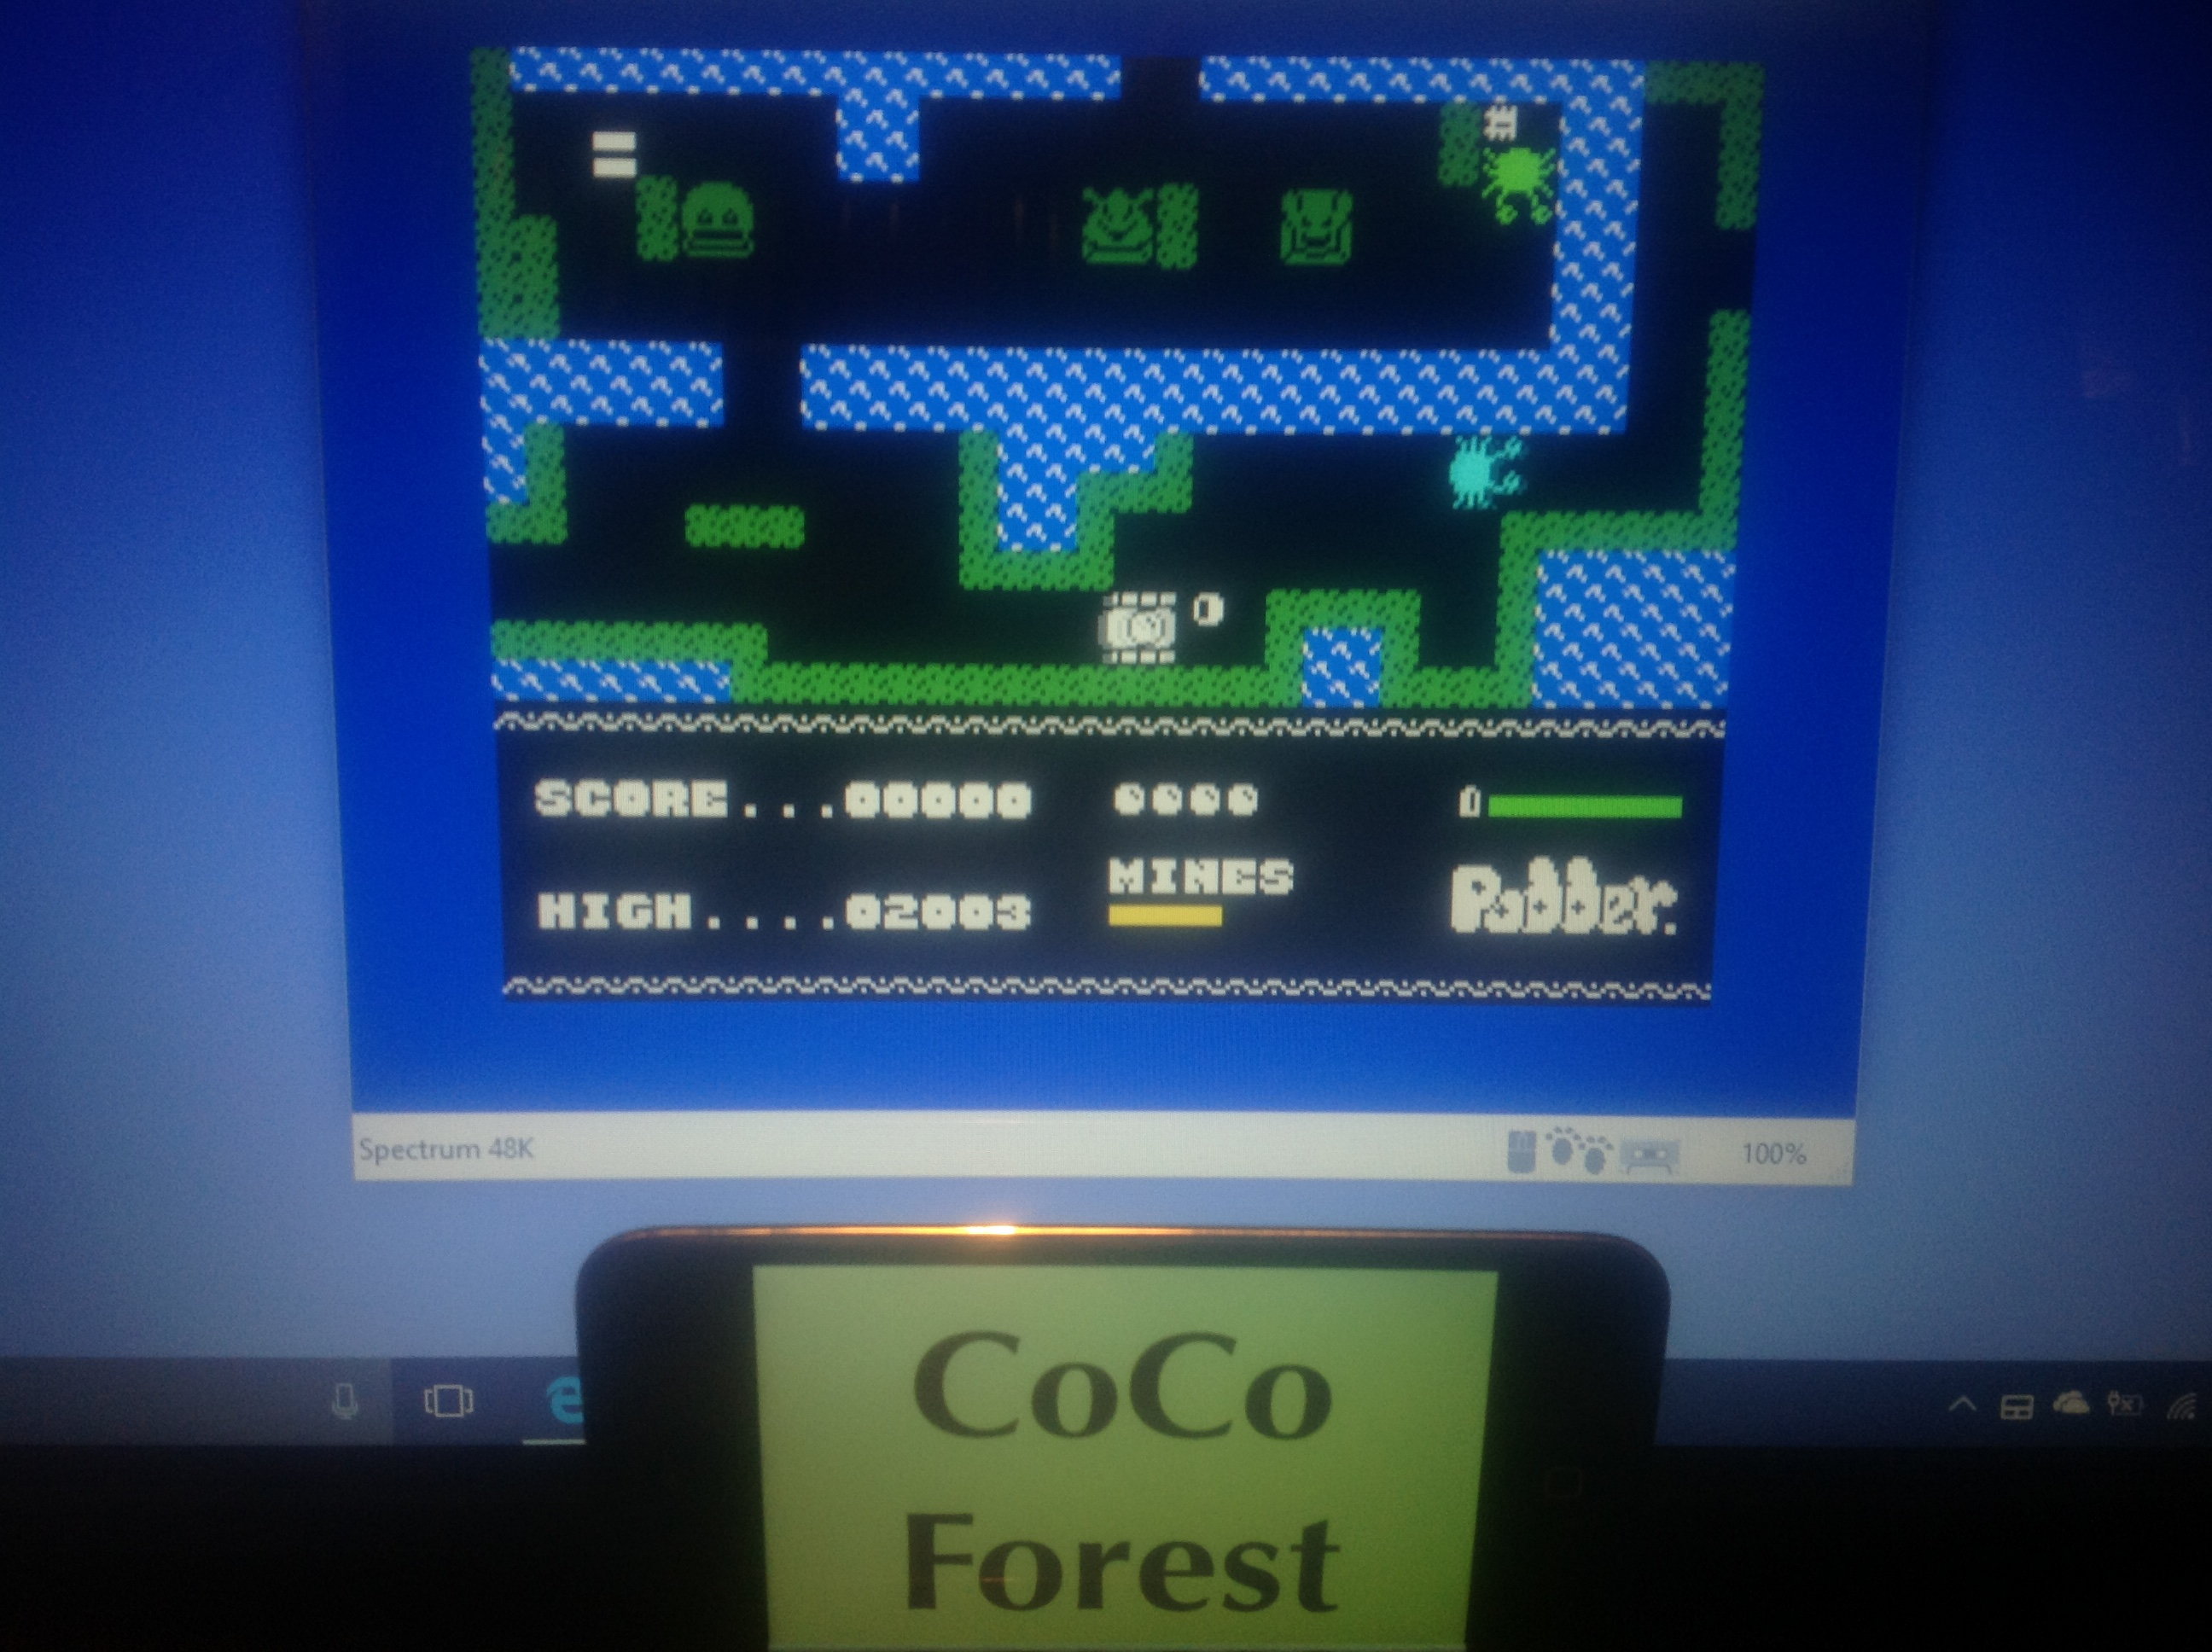 CoCoForest: Podder (ZX Spectrum Emulated) 2,003 points on 2018-01-17 13:37:45